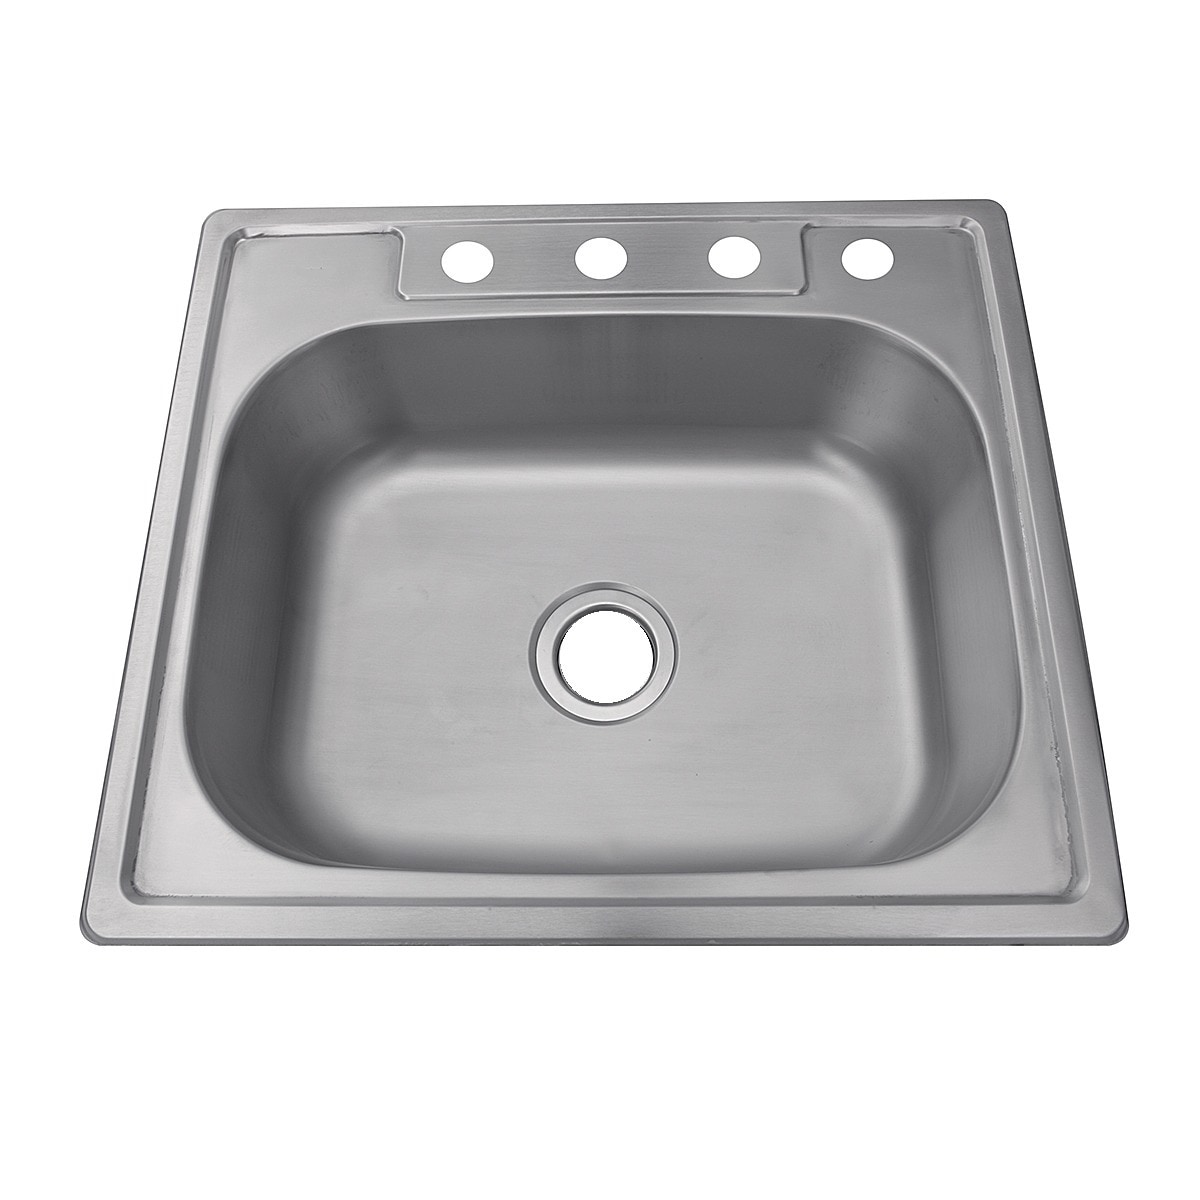 Stainless Steel 25 Inch Self 4 Hole Single Bowl Kitchen Sink Free Shipping Today 5763614